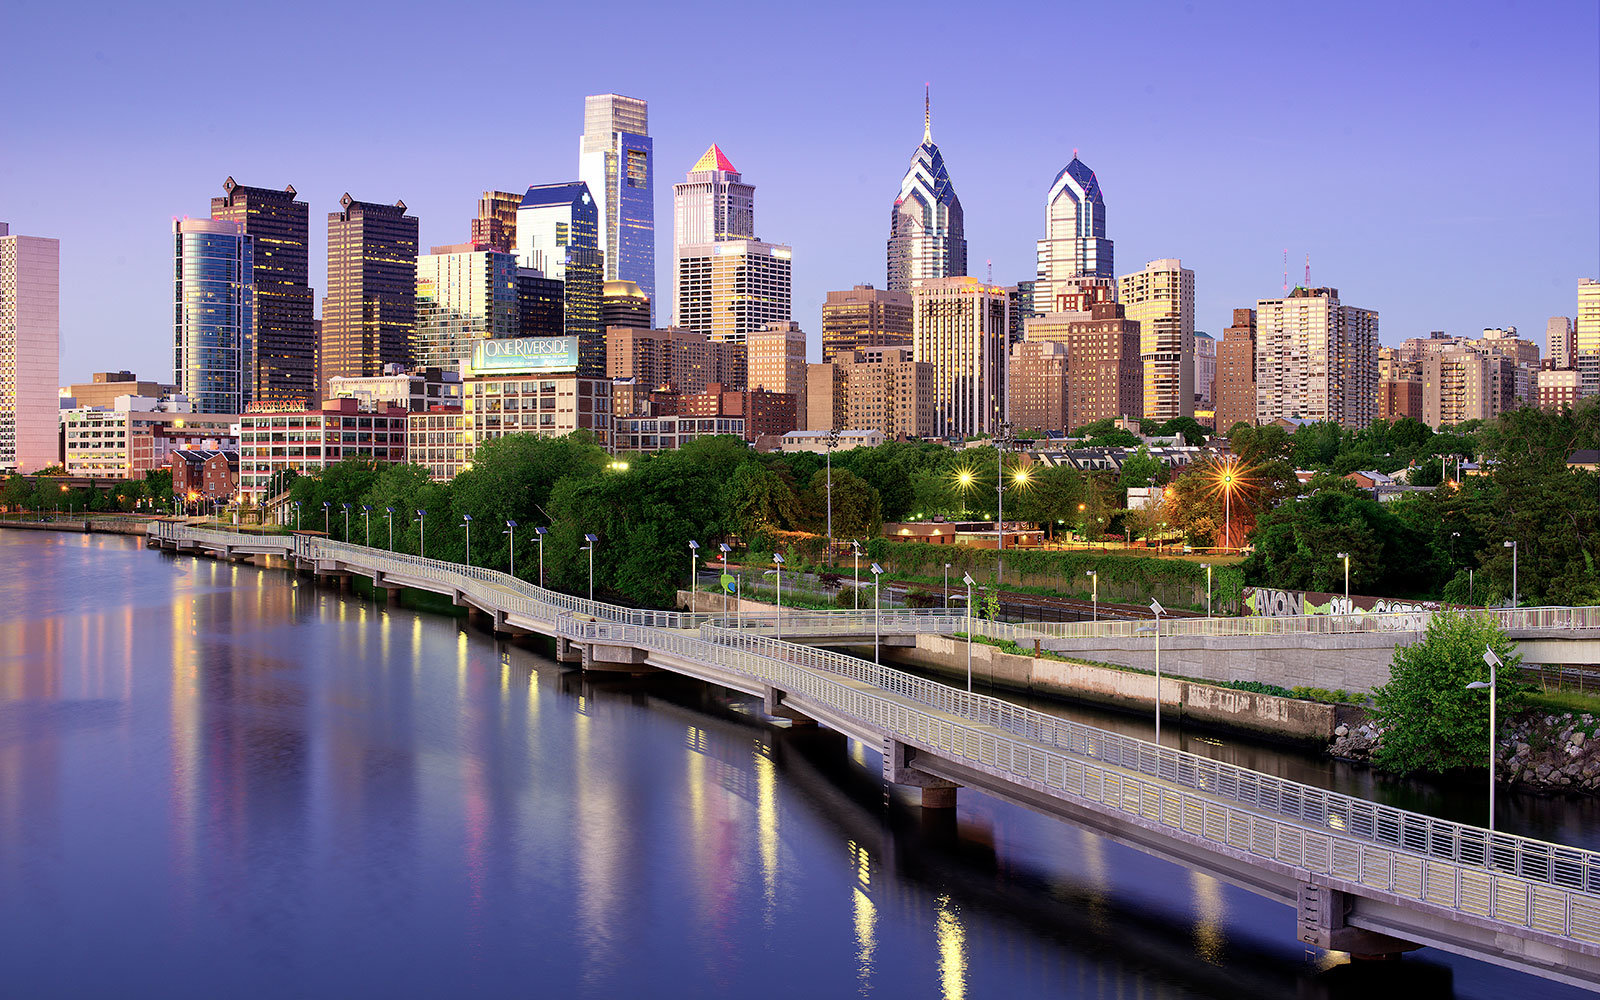 Philadelphia,  Schuylkill River in the evening